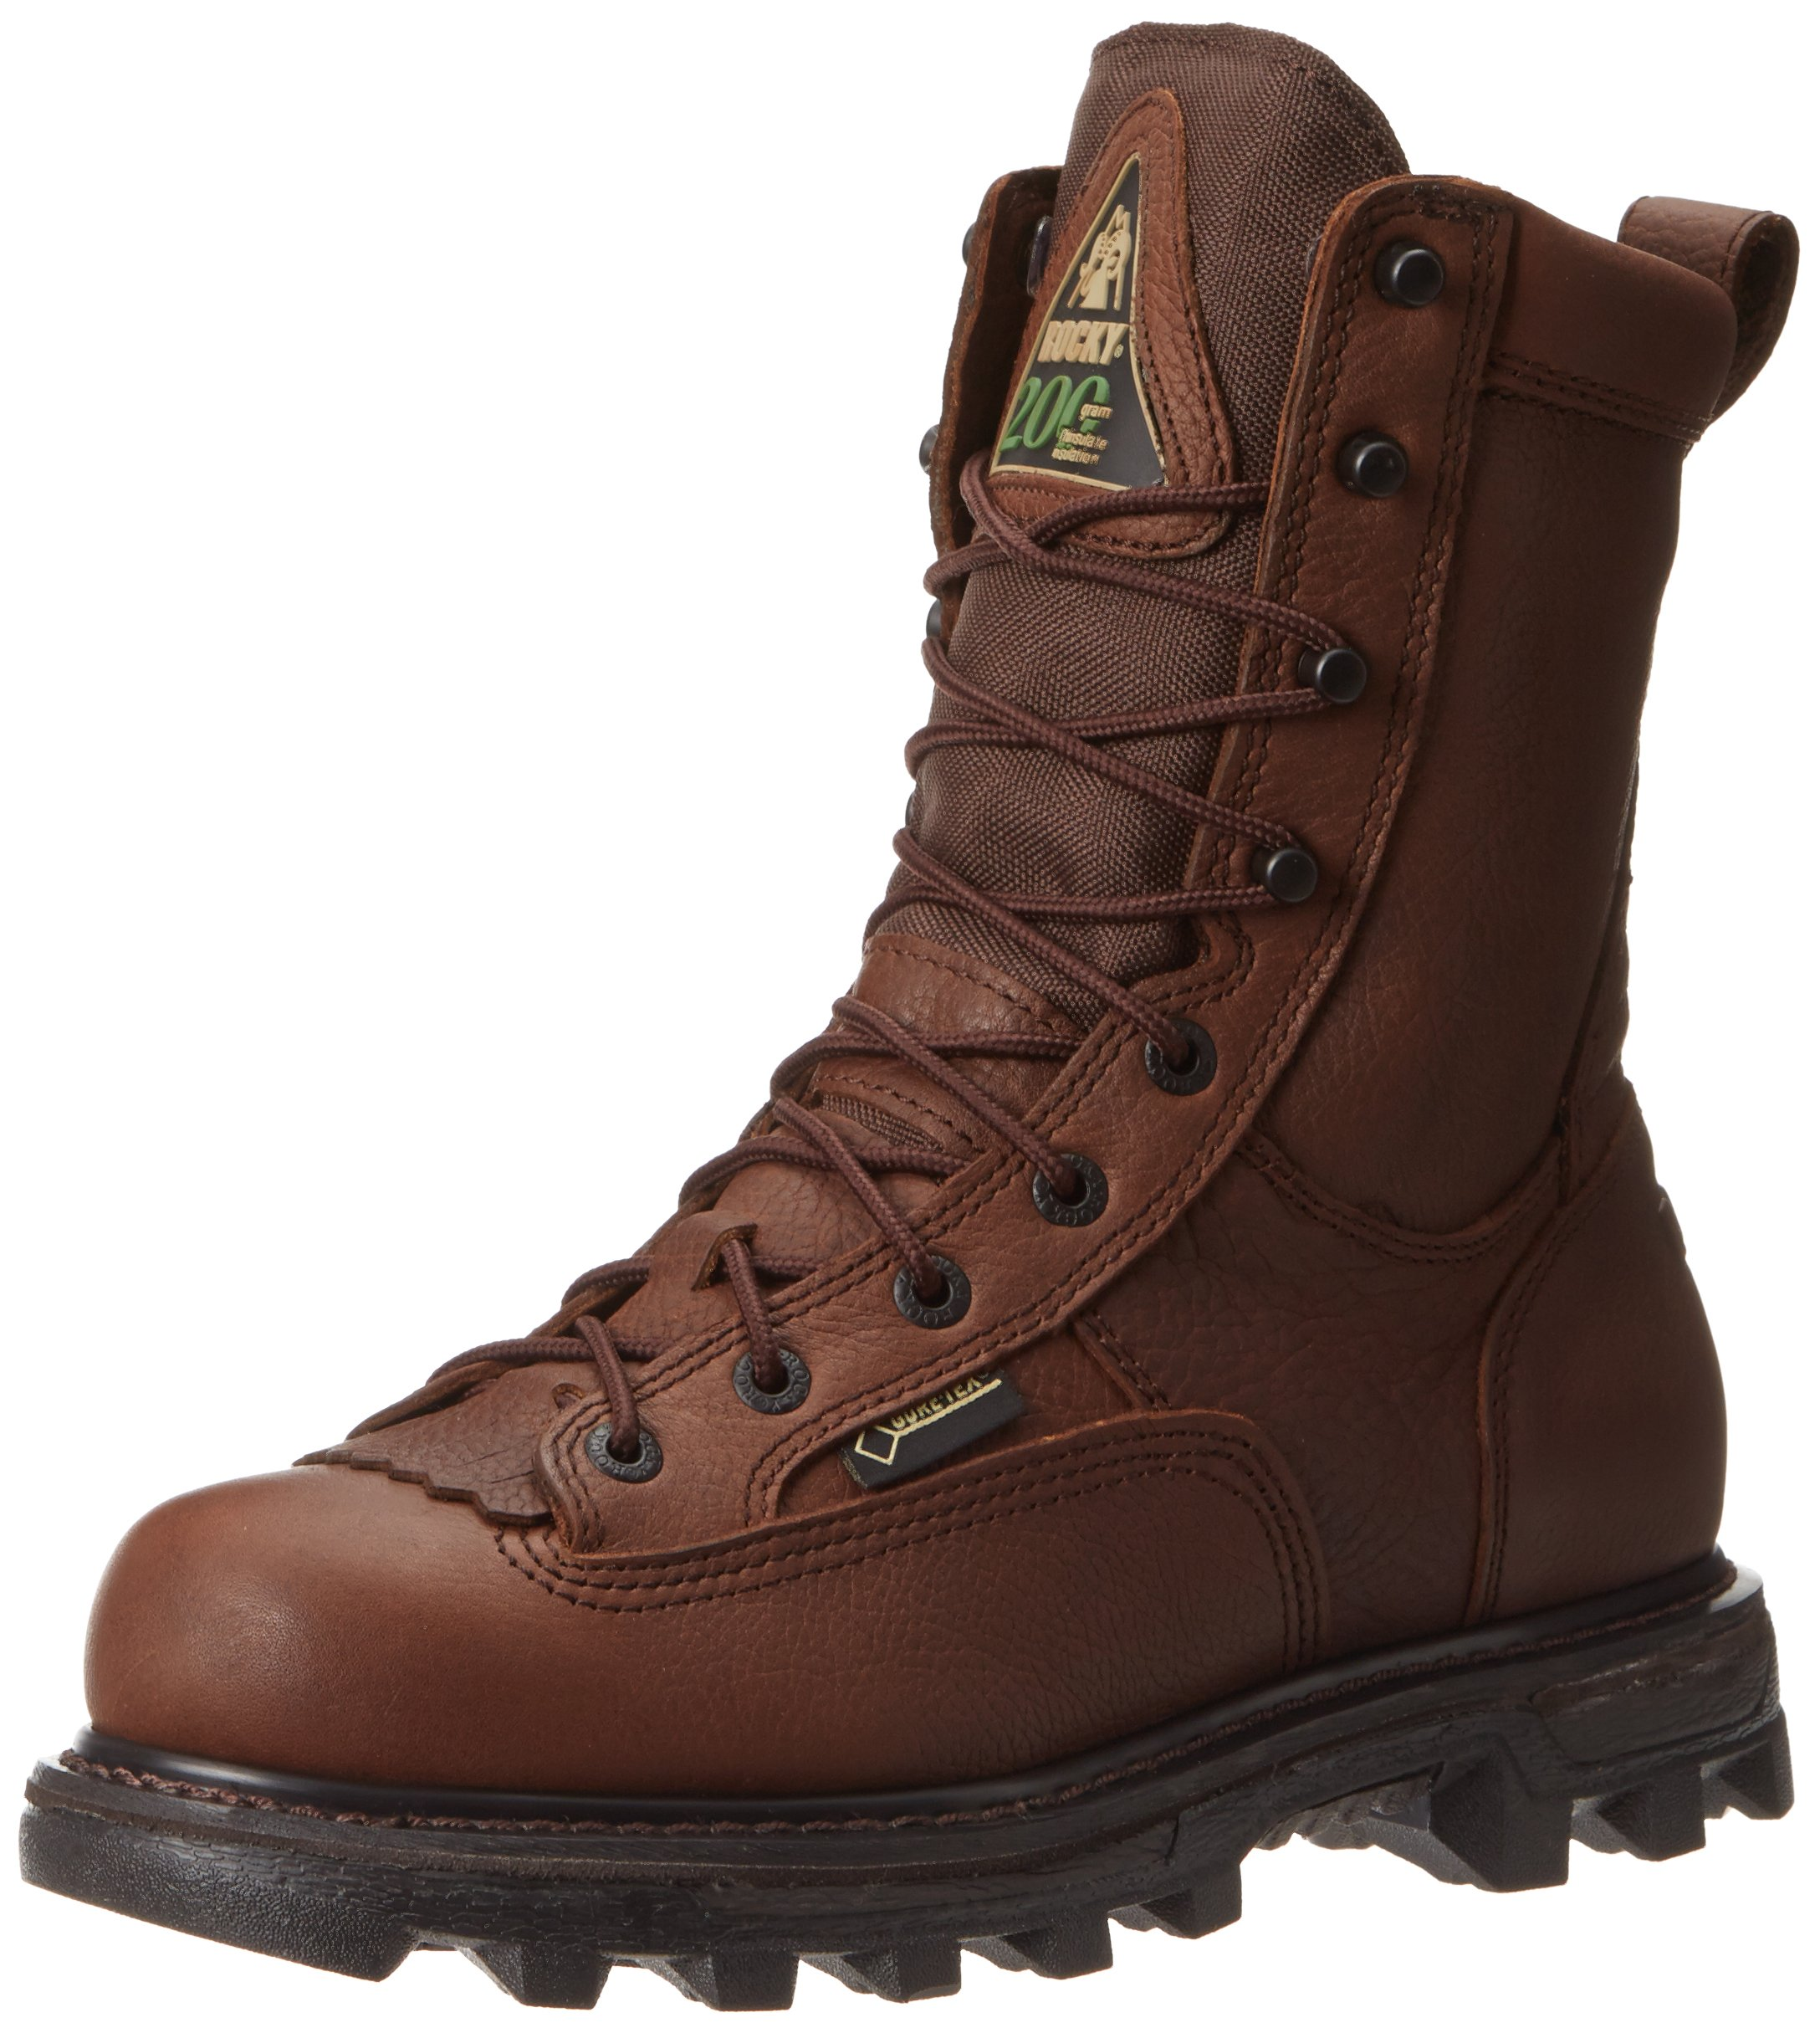 Rocky Men's Bearclaw 3d LTT Hunting Boot,Brown,9 M US